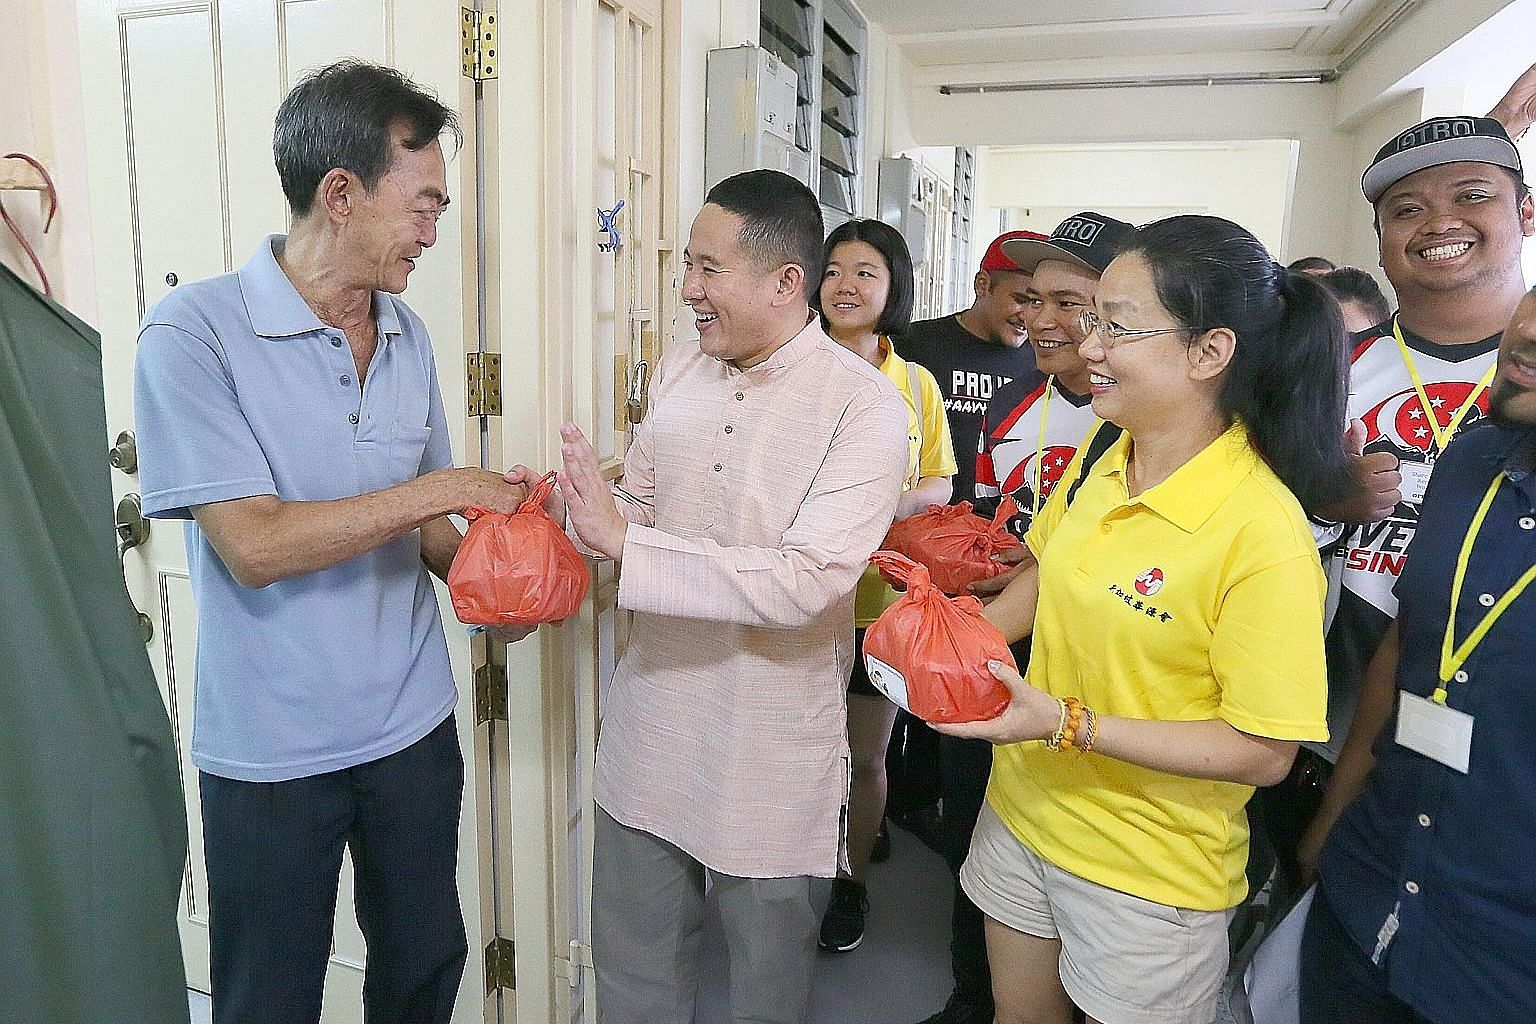 Senior Parliamentary Secretary and Sembawang GRC grassroots adviser Amrin Amin handing food to rental flat resident Lee Zhi Xin, 64. With him are Ms Wang Yi (right) and her daughter Zhao Jiayi. Over 100 volunteers packed food which was then delivered